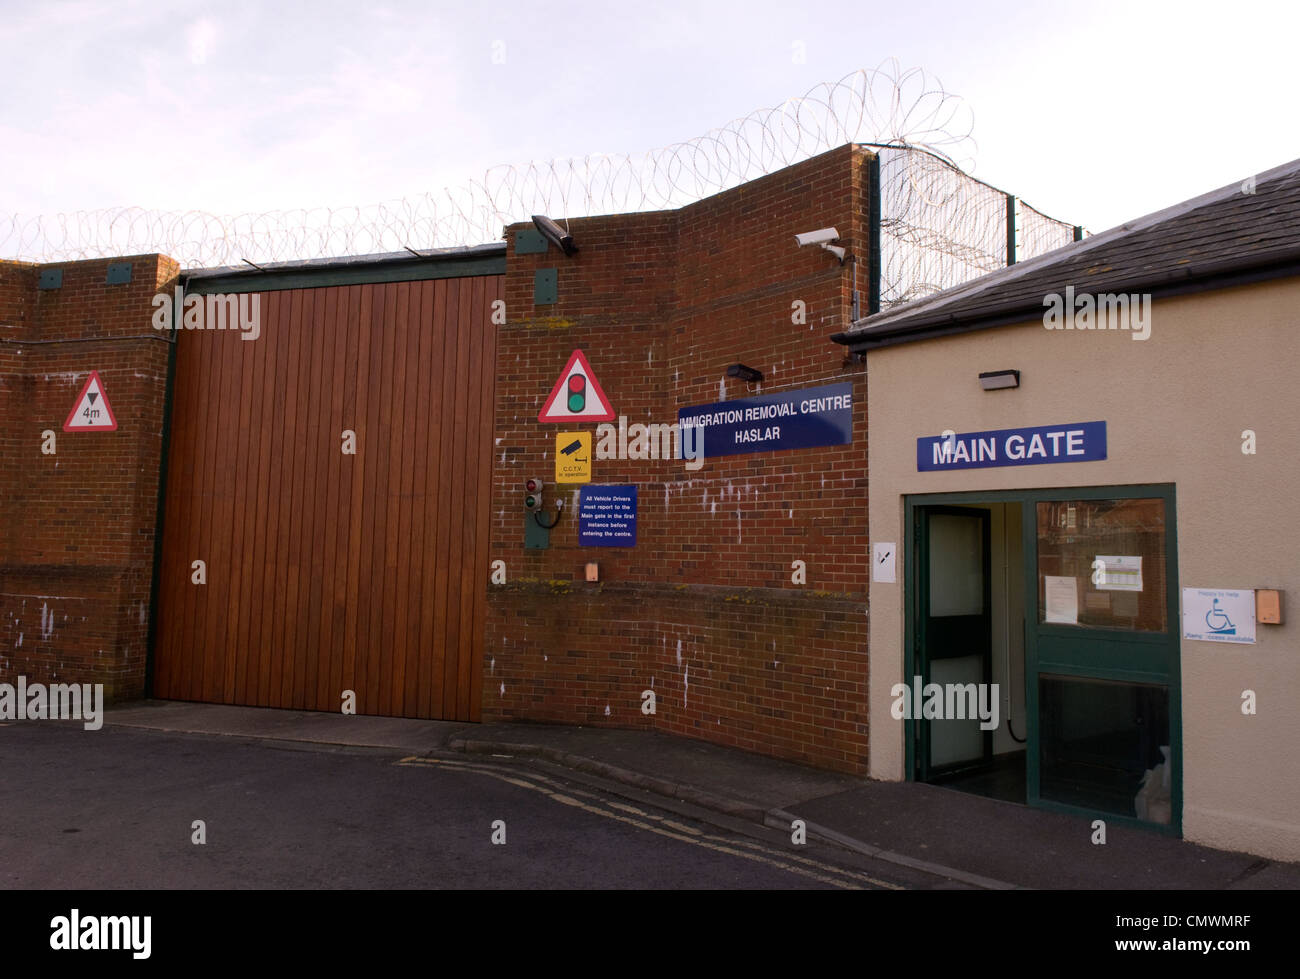 Main entrance to the Immigration Removal Centre, Haslar, Gosport, Hampshire, UK. - Stock Image